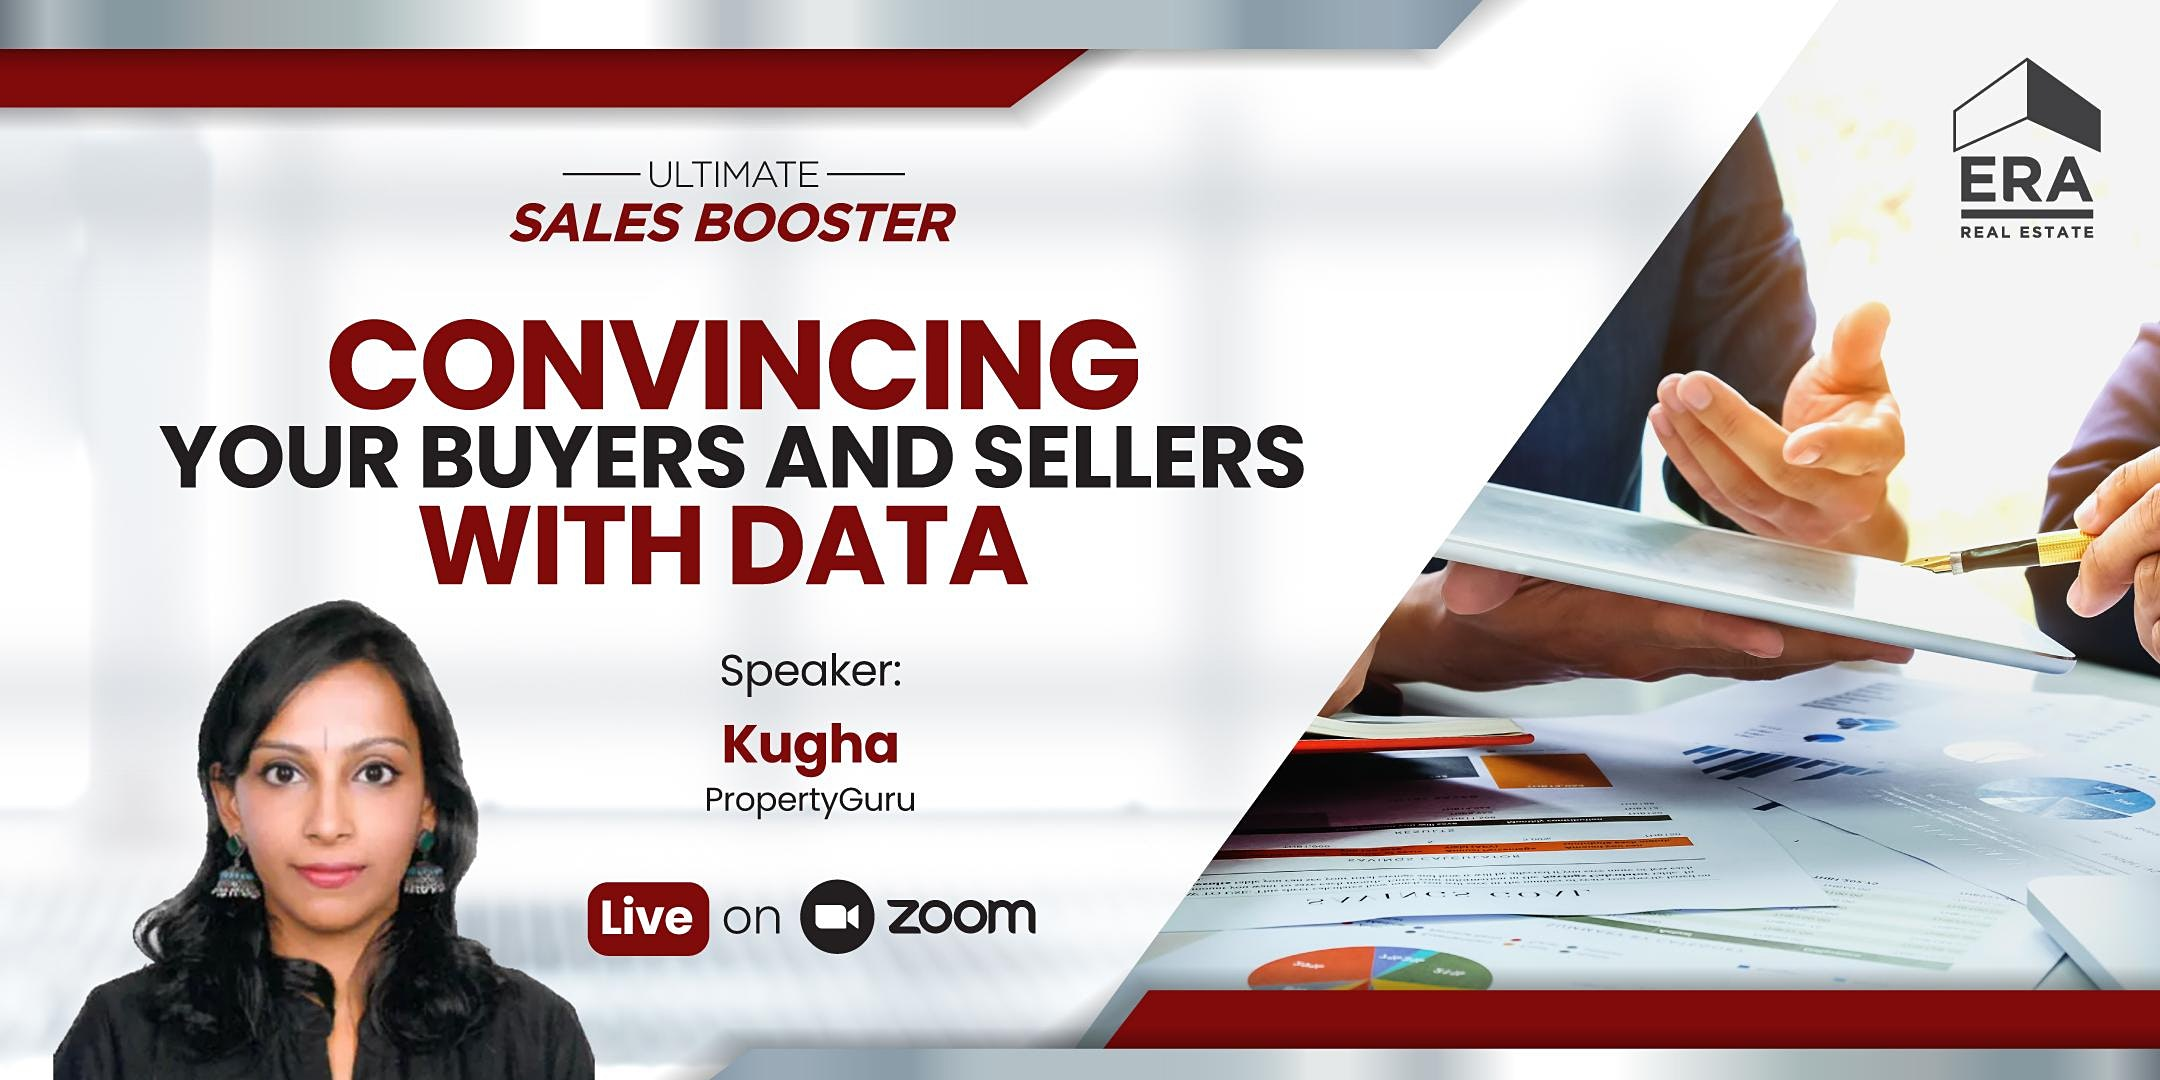 Ultimate Sales Booster